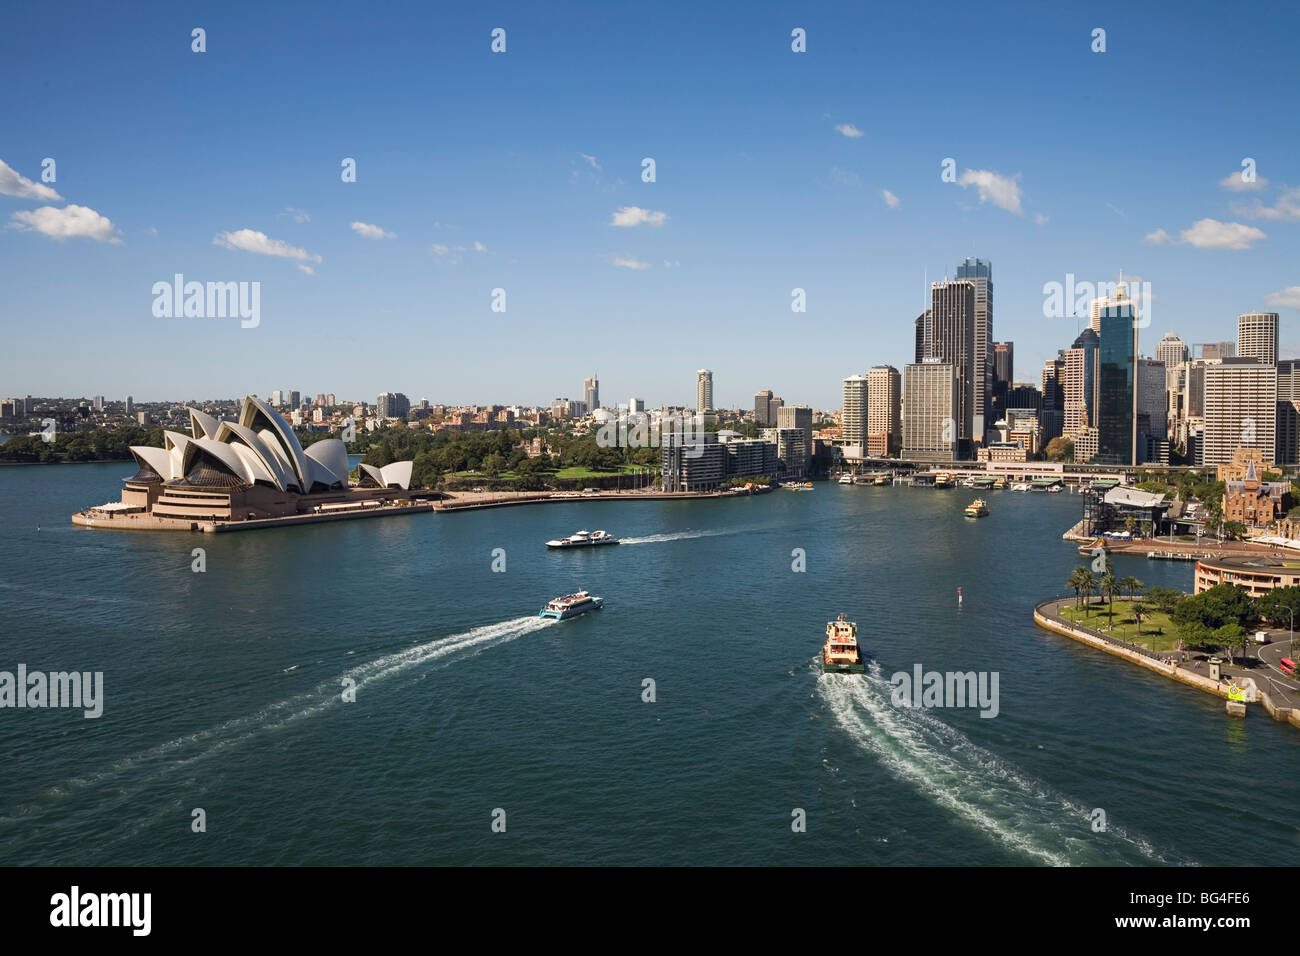 Circular Quay, Sydney Ferries terminus and rail stop, Sydney, New South Wales, Australia - Stock Image